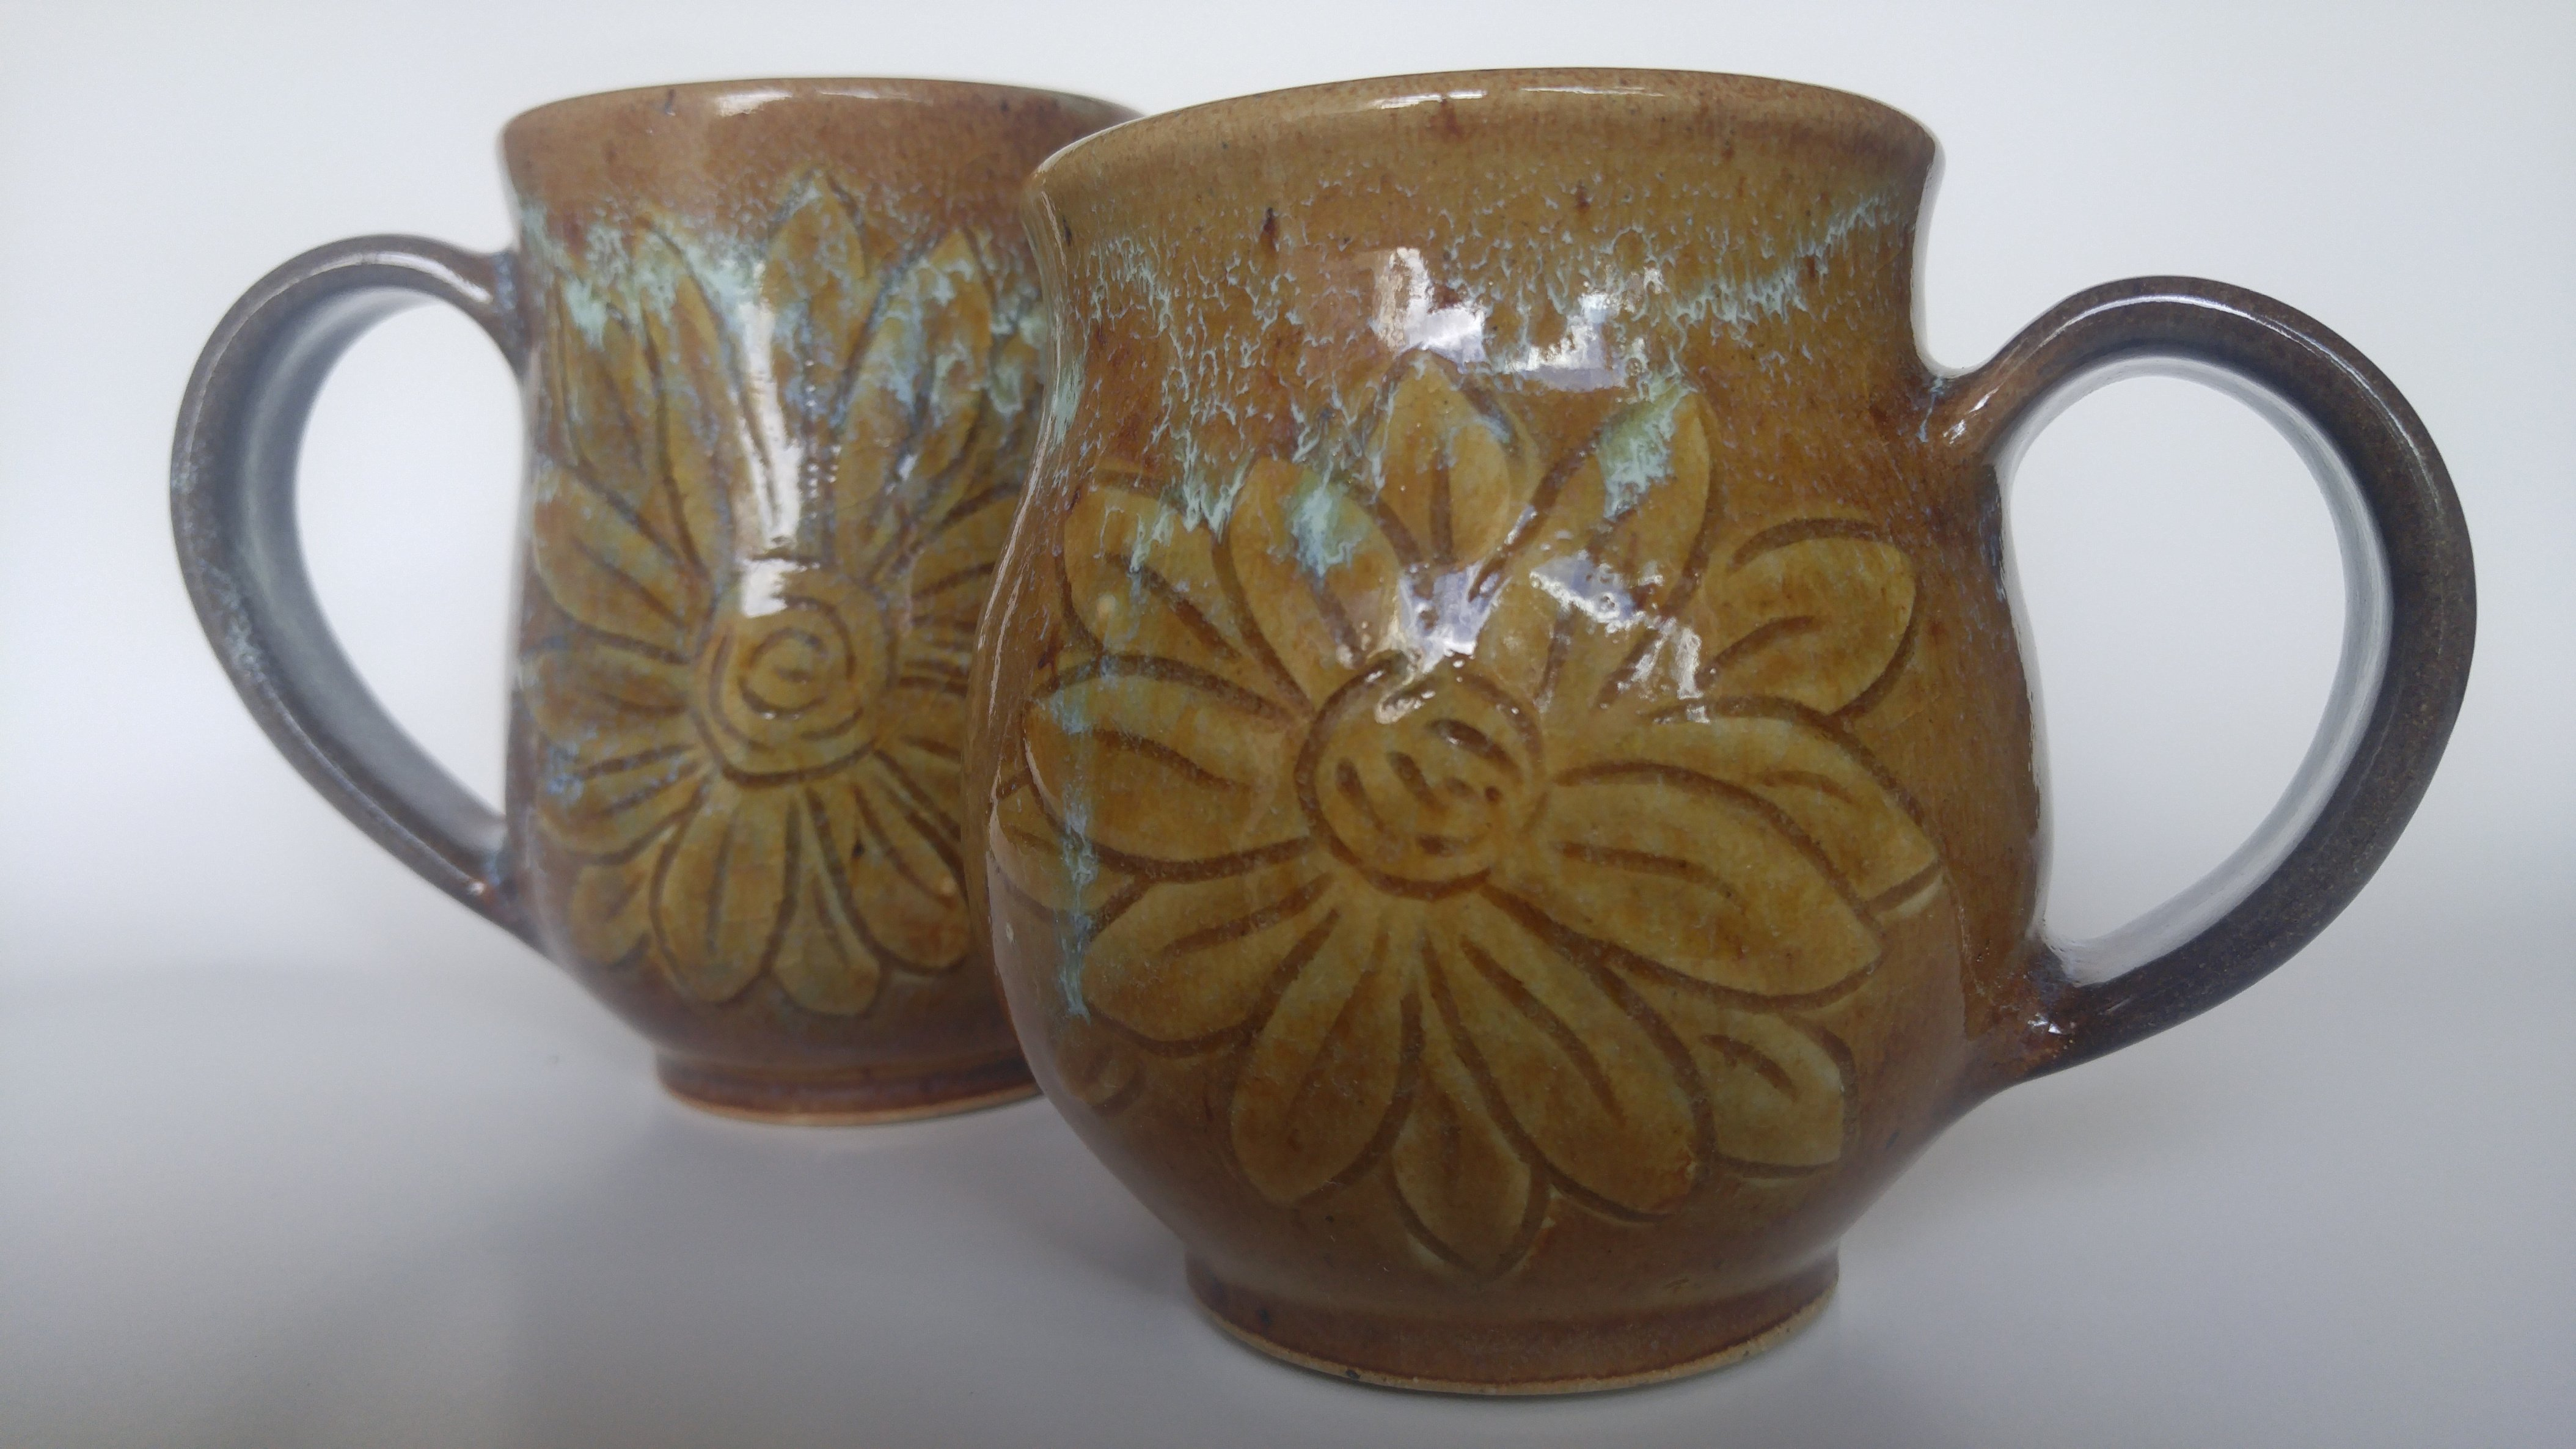 https://0901.nccdn.net/4_2/000/000/03f/ac7/Flower-Mugs-Small-4216x2371.jpg